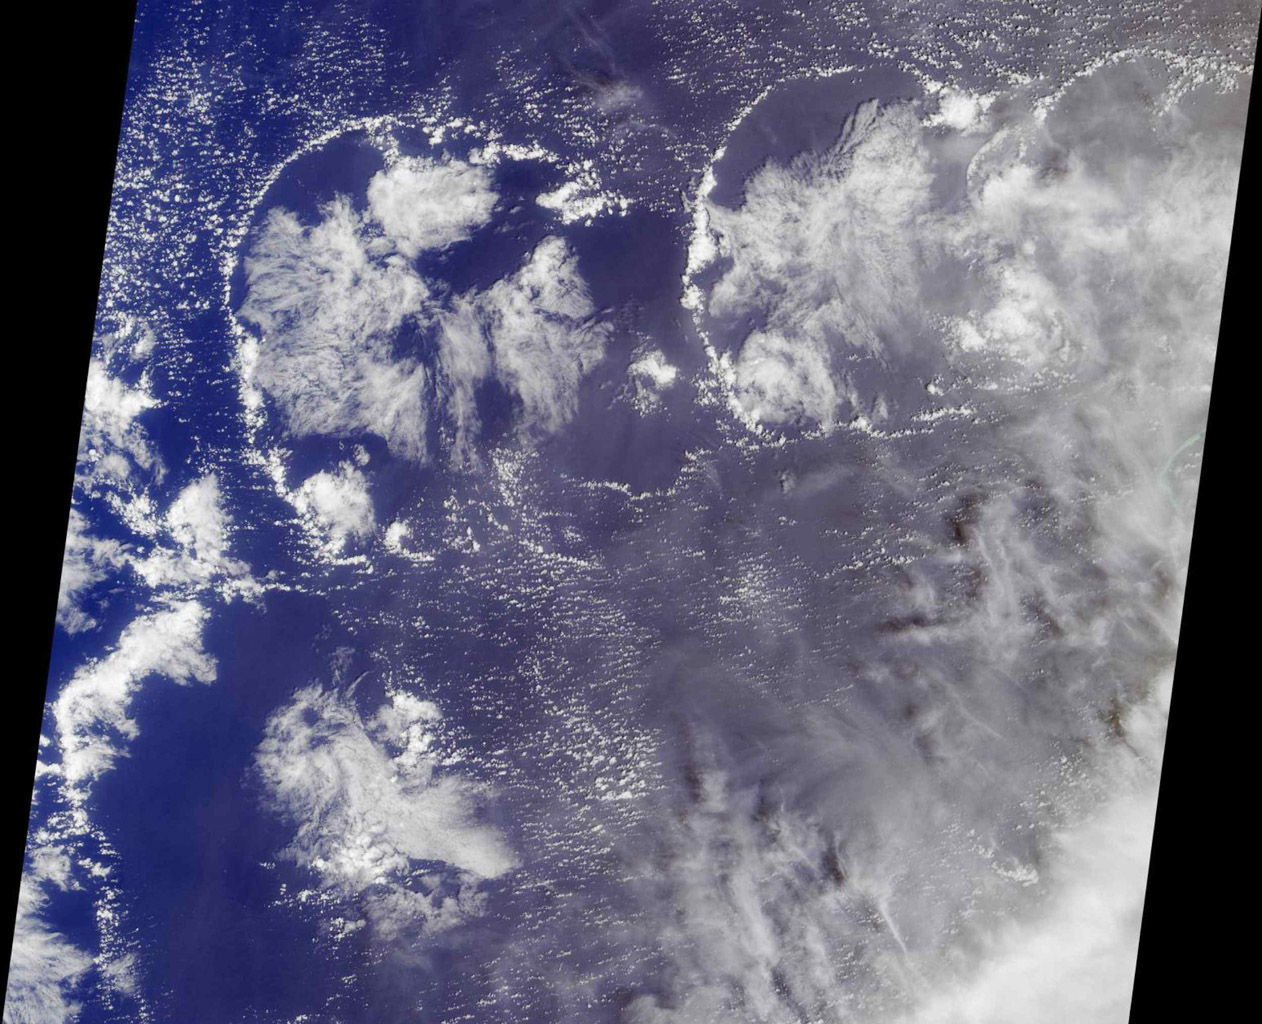 The image was acquired by NASA's Terra satellite on March 11, 2002, and is centered west of the Marshall Islands. Enewetak Atoll is discernible through thin cloud as the turquoise band near the right-hand edge of the image.